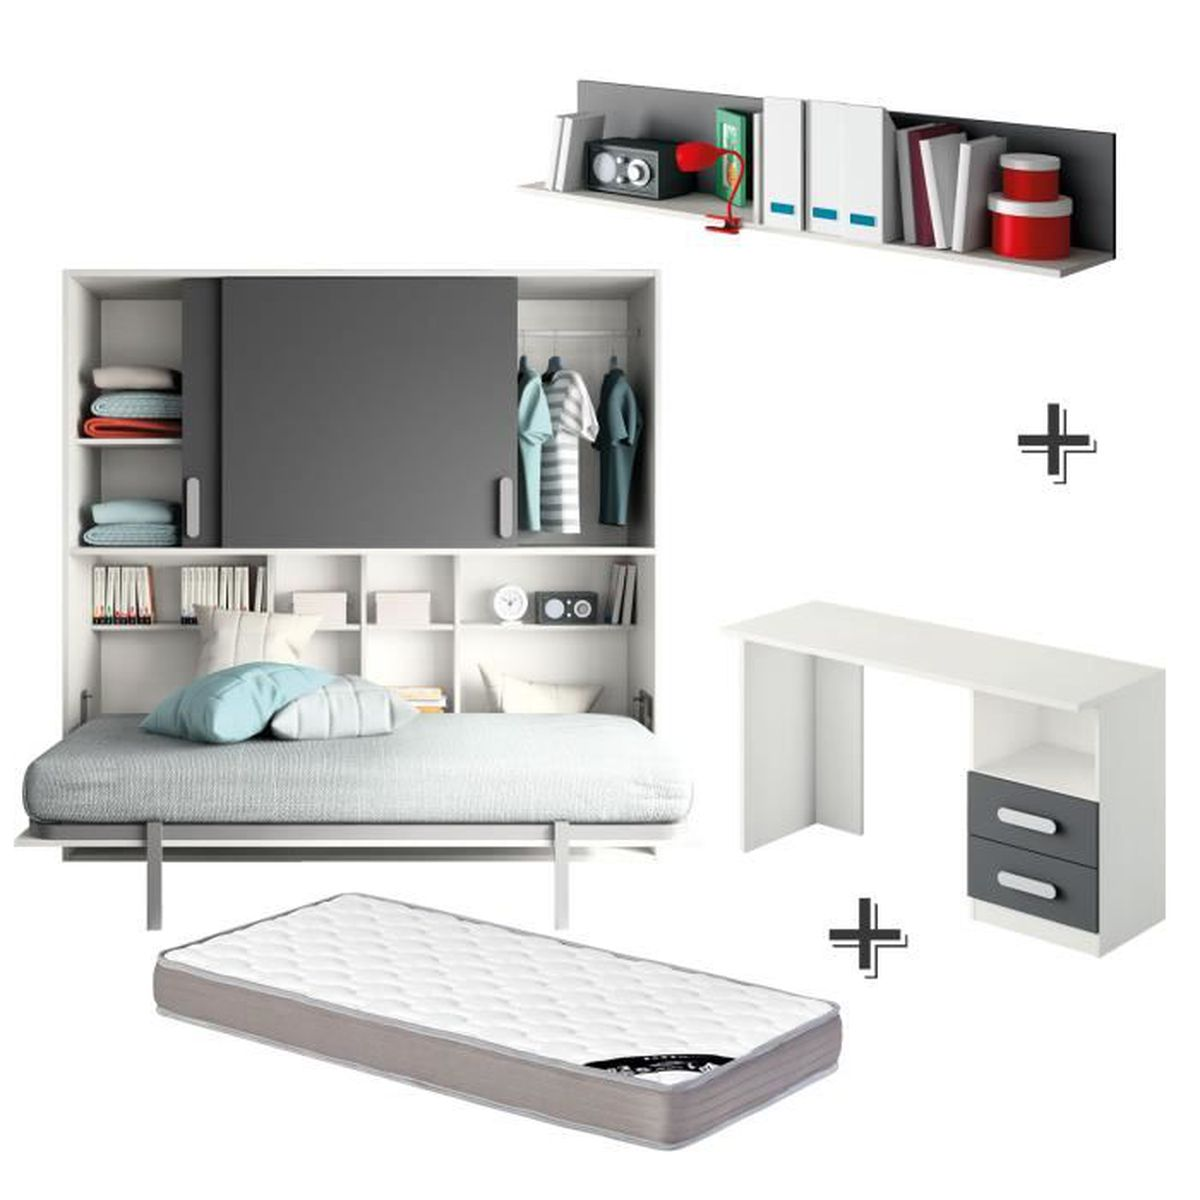 chambre complete lit abttant 90x190 blanc anthracite achat vente lit escamotable chambre. Black Bedroom Furniture Sets. Home Design Ideas